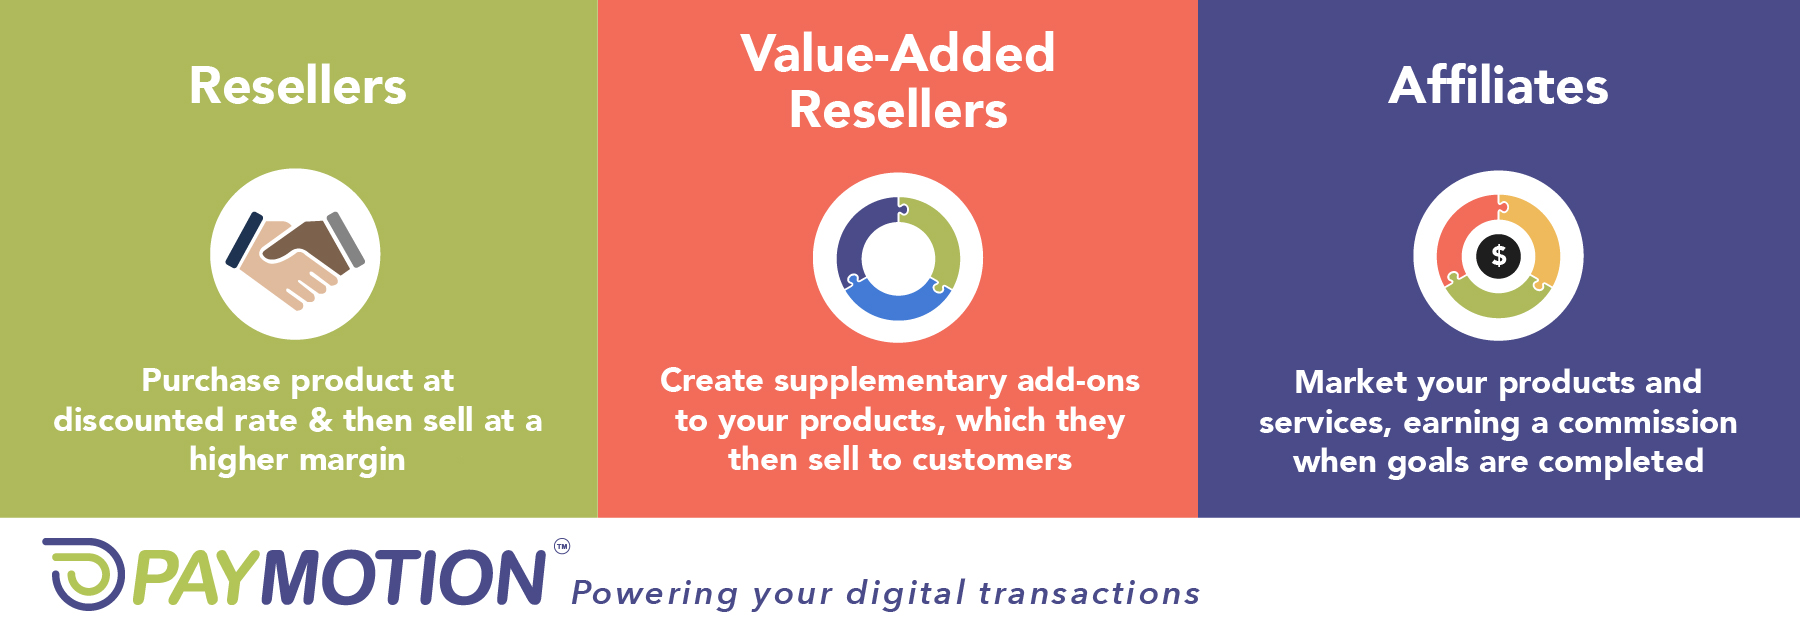 Origins Ecommerce Channel Partners. Resellers, value added resellers and Affiliates